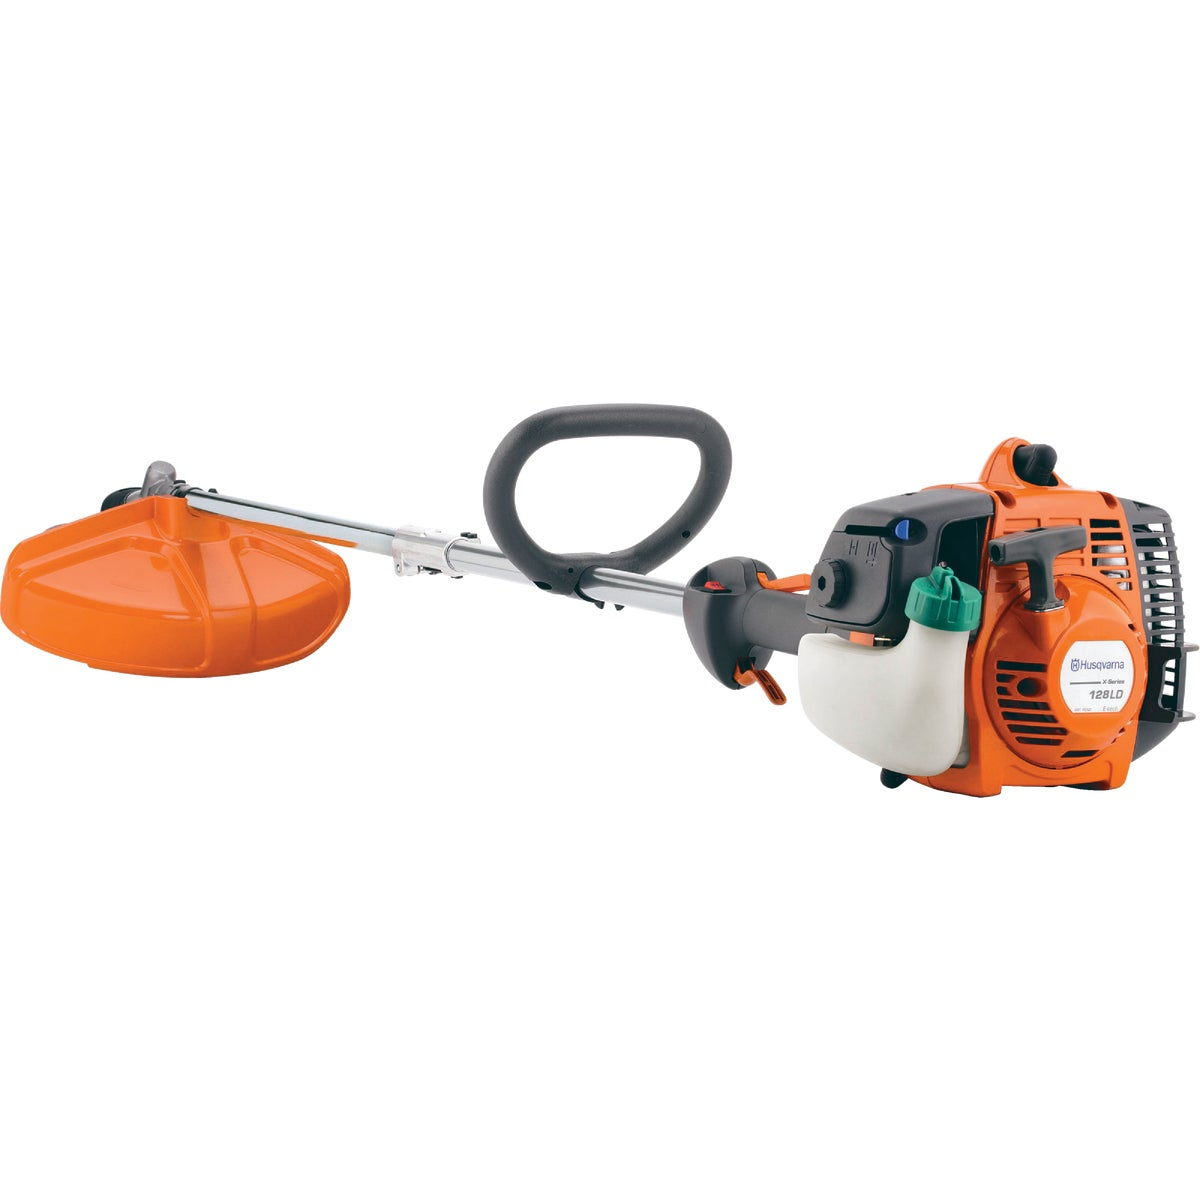 "17"" GAS STRING TRIMMER - 952711953 by Husqvarna Outdoor"